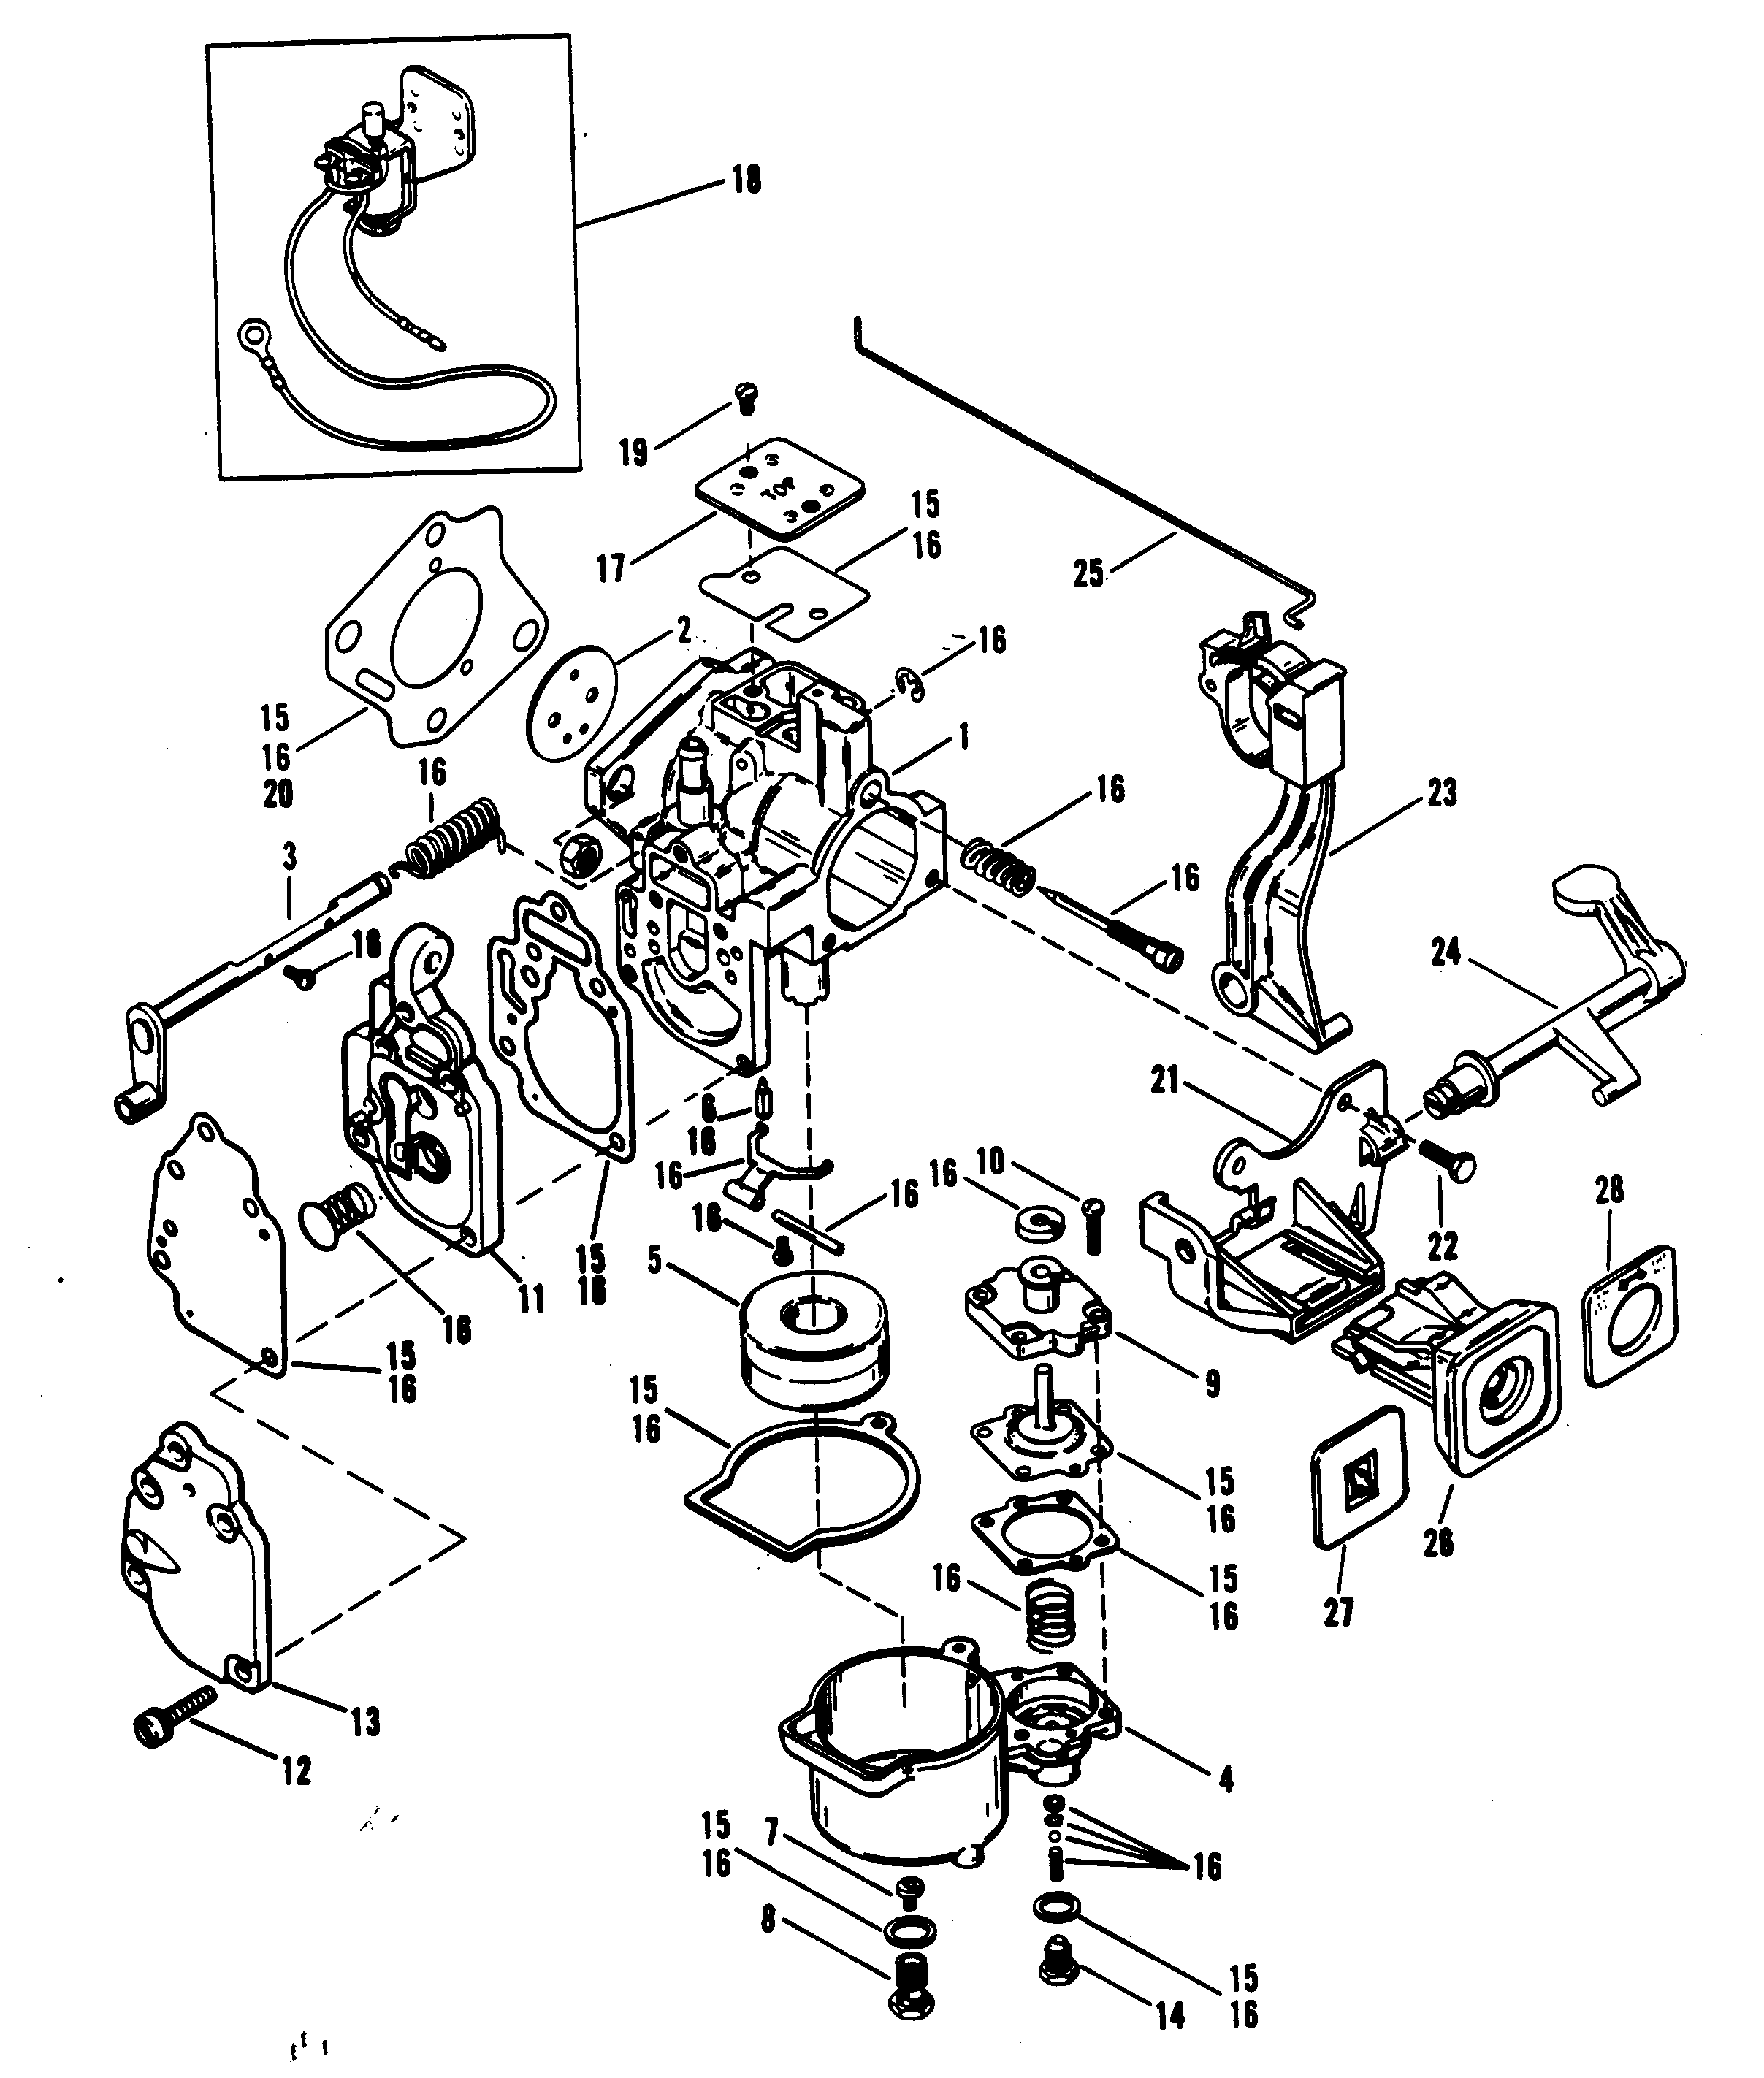 25 hp mercury outboard parts diagram  25  get free image